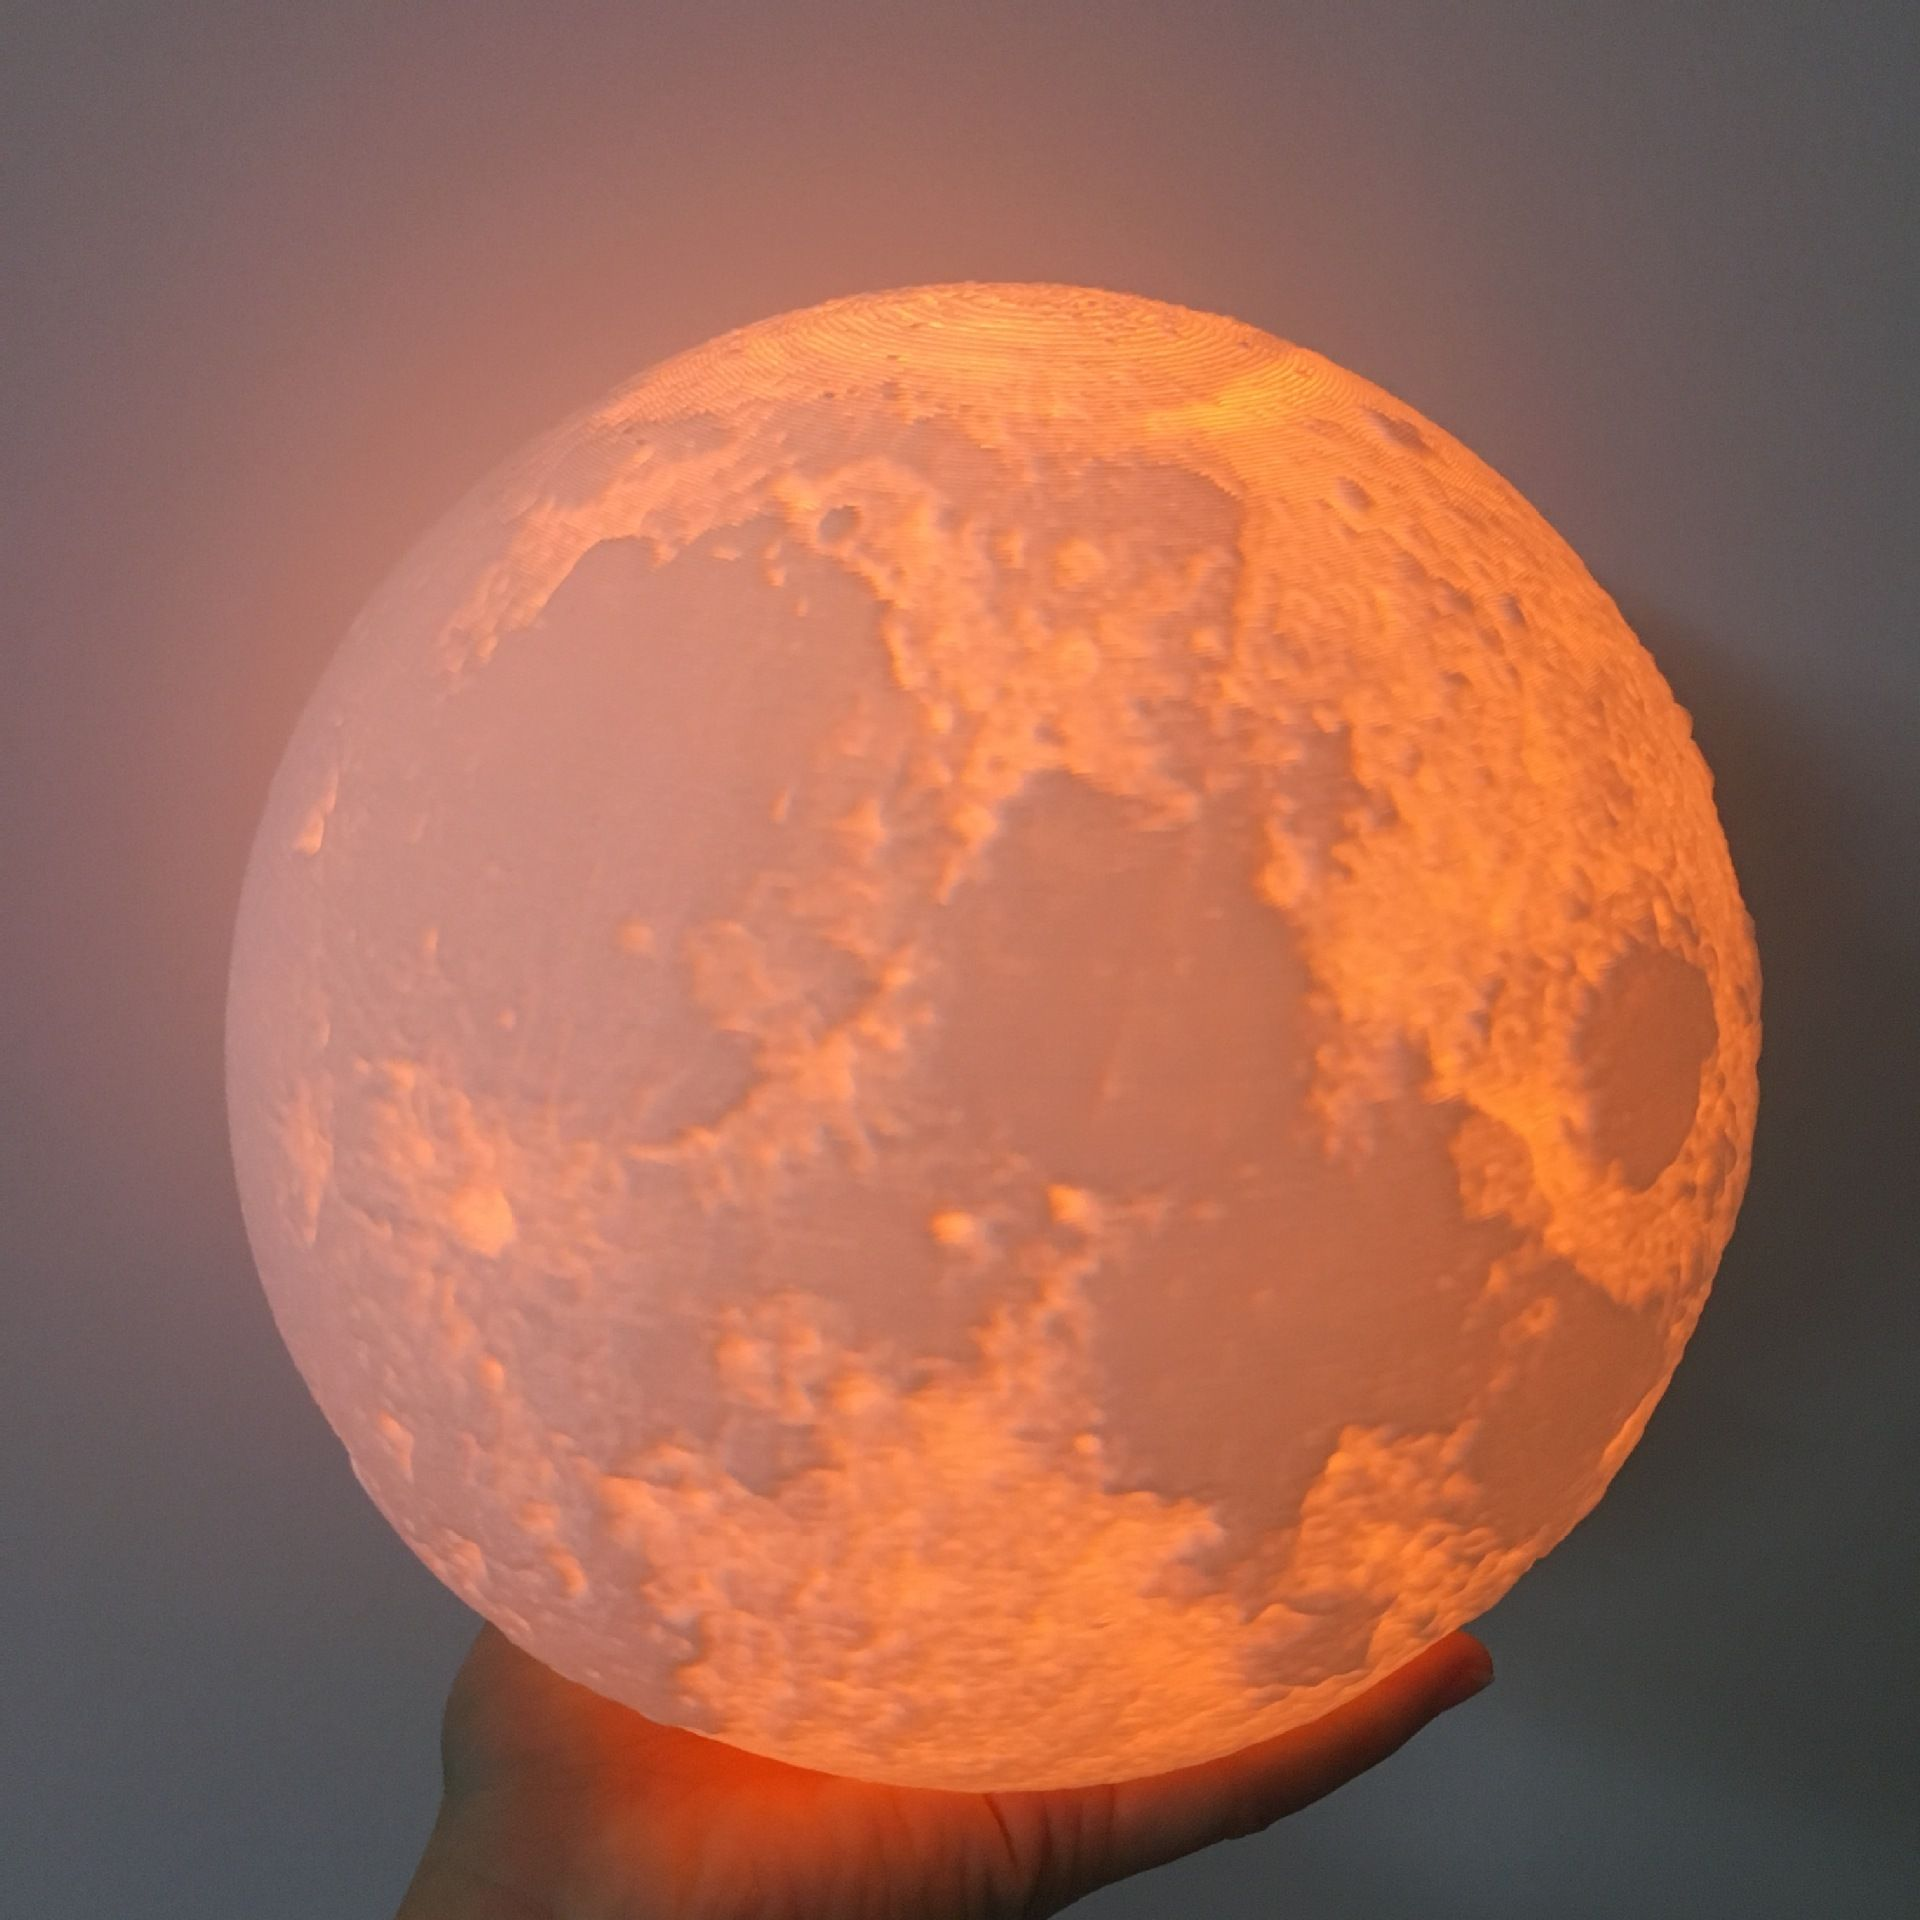 Customized 24cm 3D Magical Moon Night Light Smart Romantic Moonlight Remote Control USB Charge Desk Lamp Bedside IY303170-24